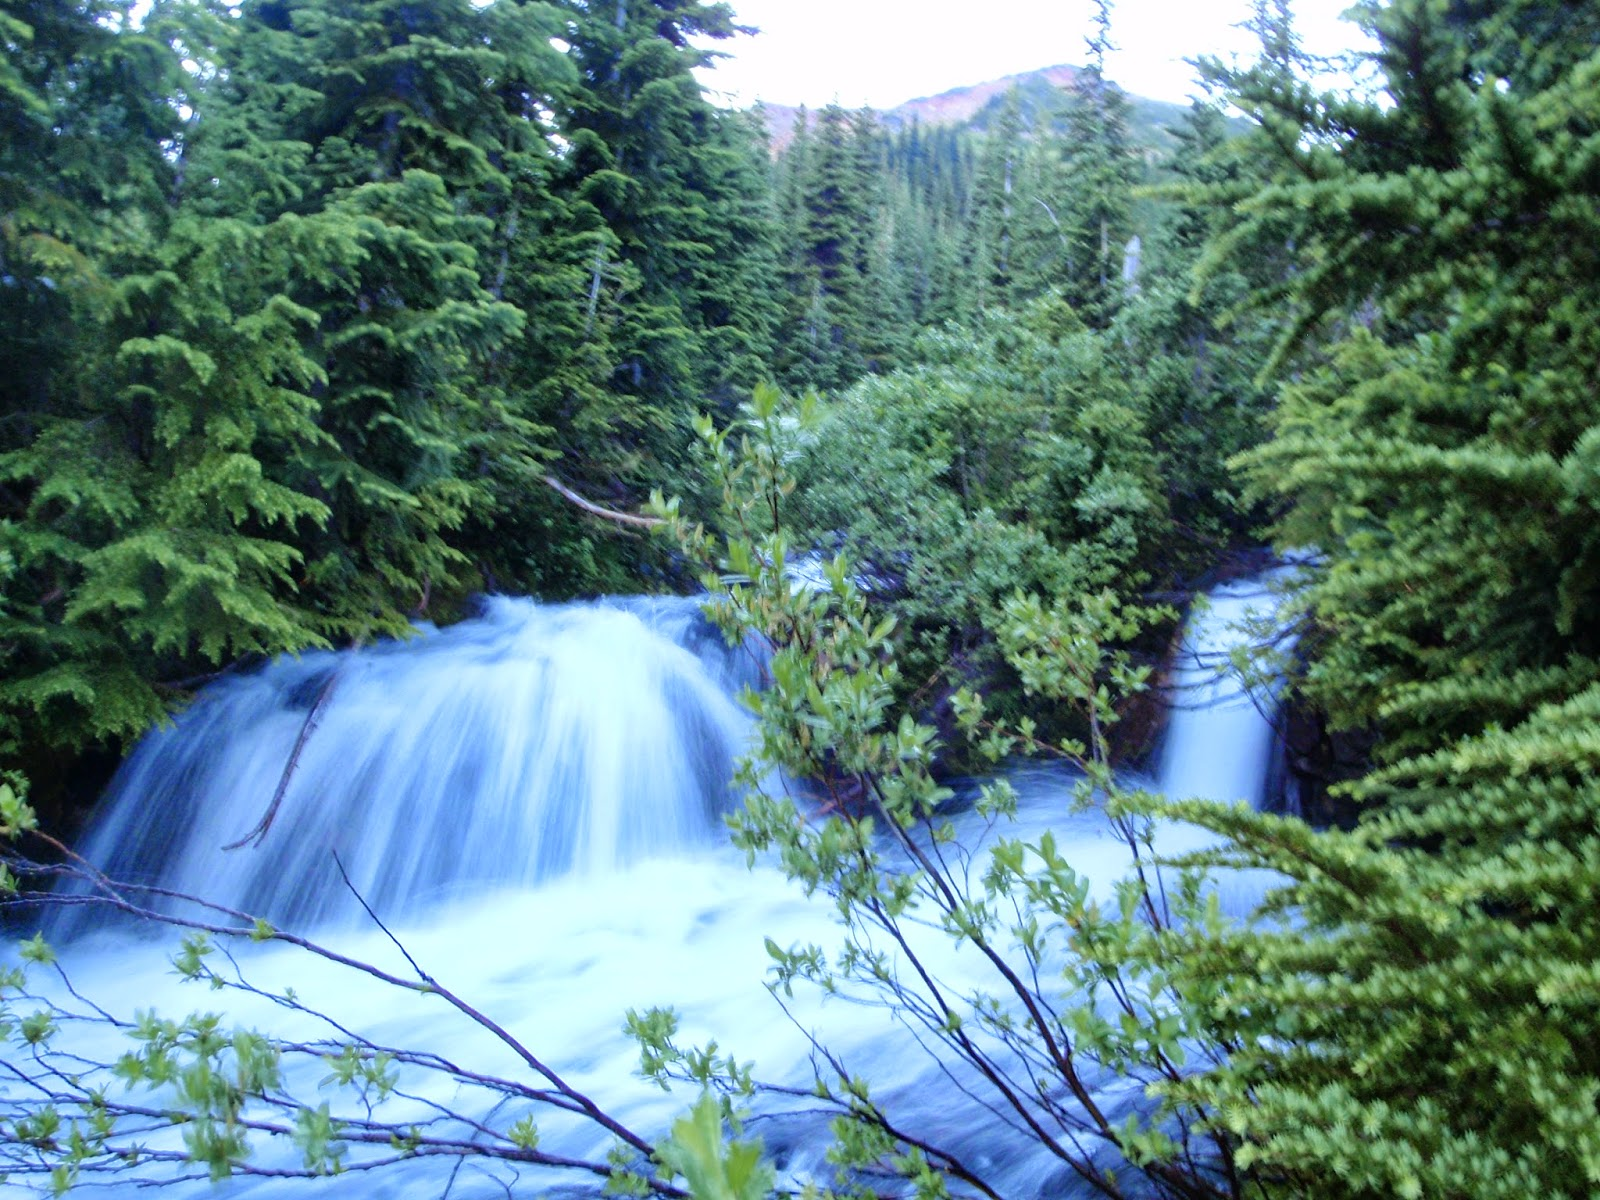 Falls and crossing area at 5 pm @ Glacier Peak Wilderness Image Lake Trail